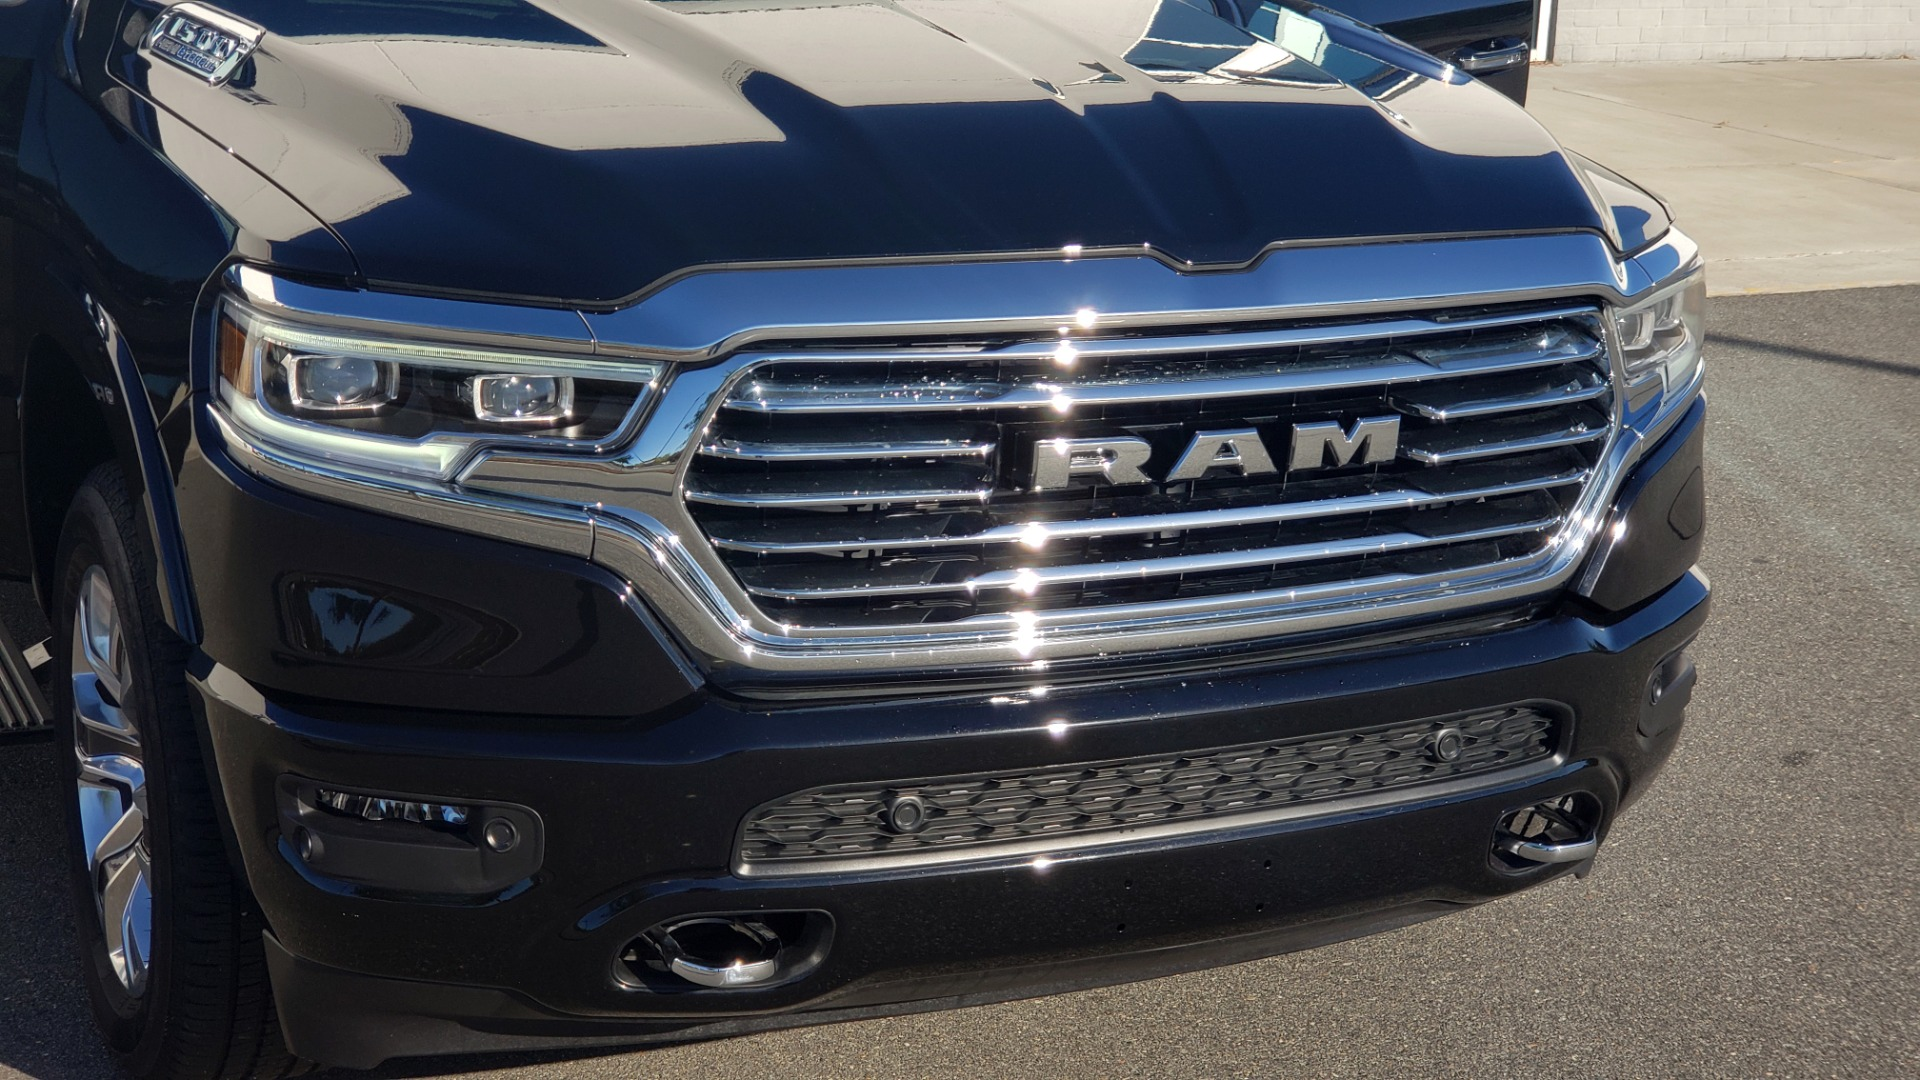 Used 2021 Ram 1500 LONGHORN LIMITED 4X4 / 5.7L HEMI / CREWCAB / H/K SND / PANO-ROOF / REARVIEW for sale $65,999 at Formula Imports in Charlotte NC 28227 24